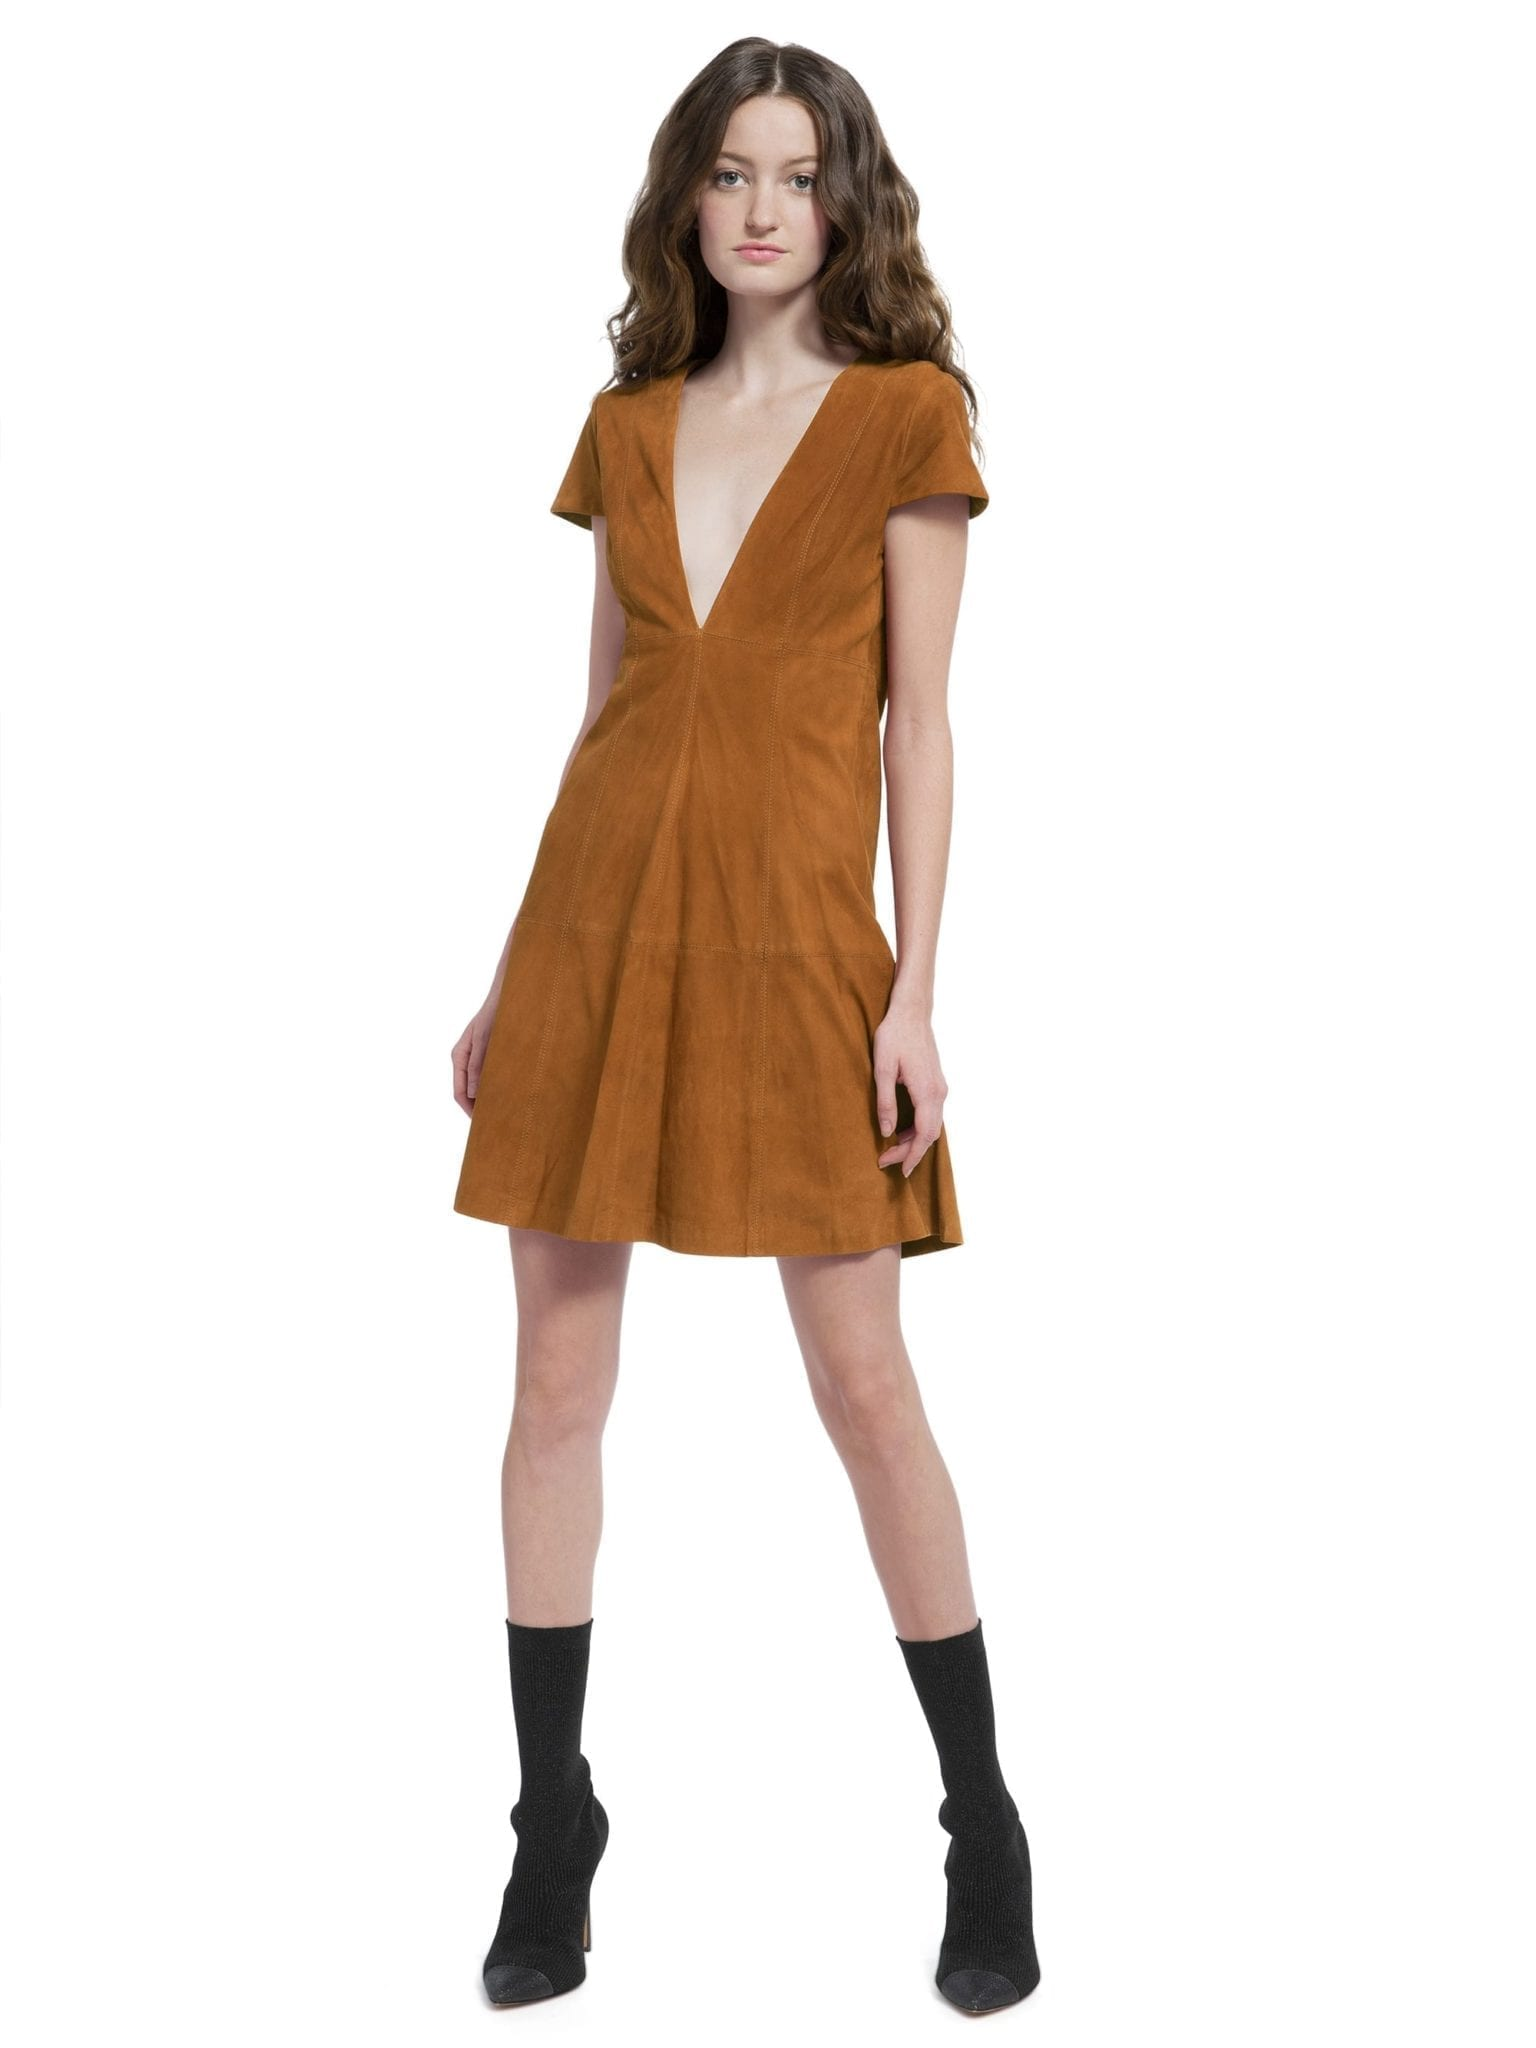 ALICE AND OLIVIA Amara Suede Deep V Baby Doll Biscuit Dress